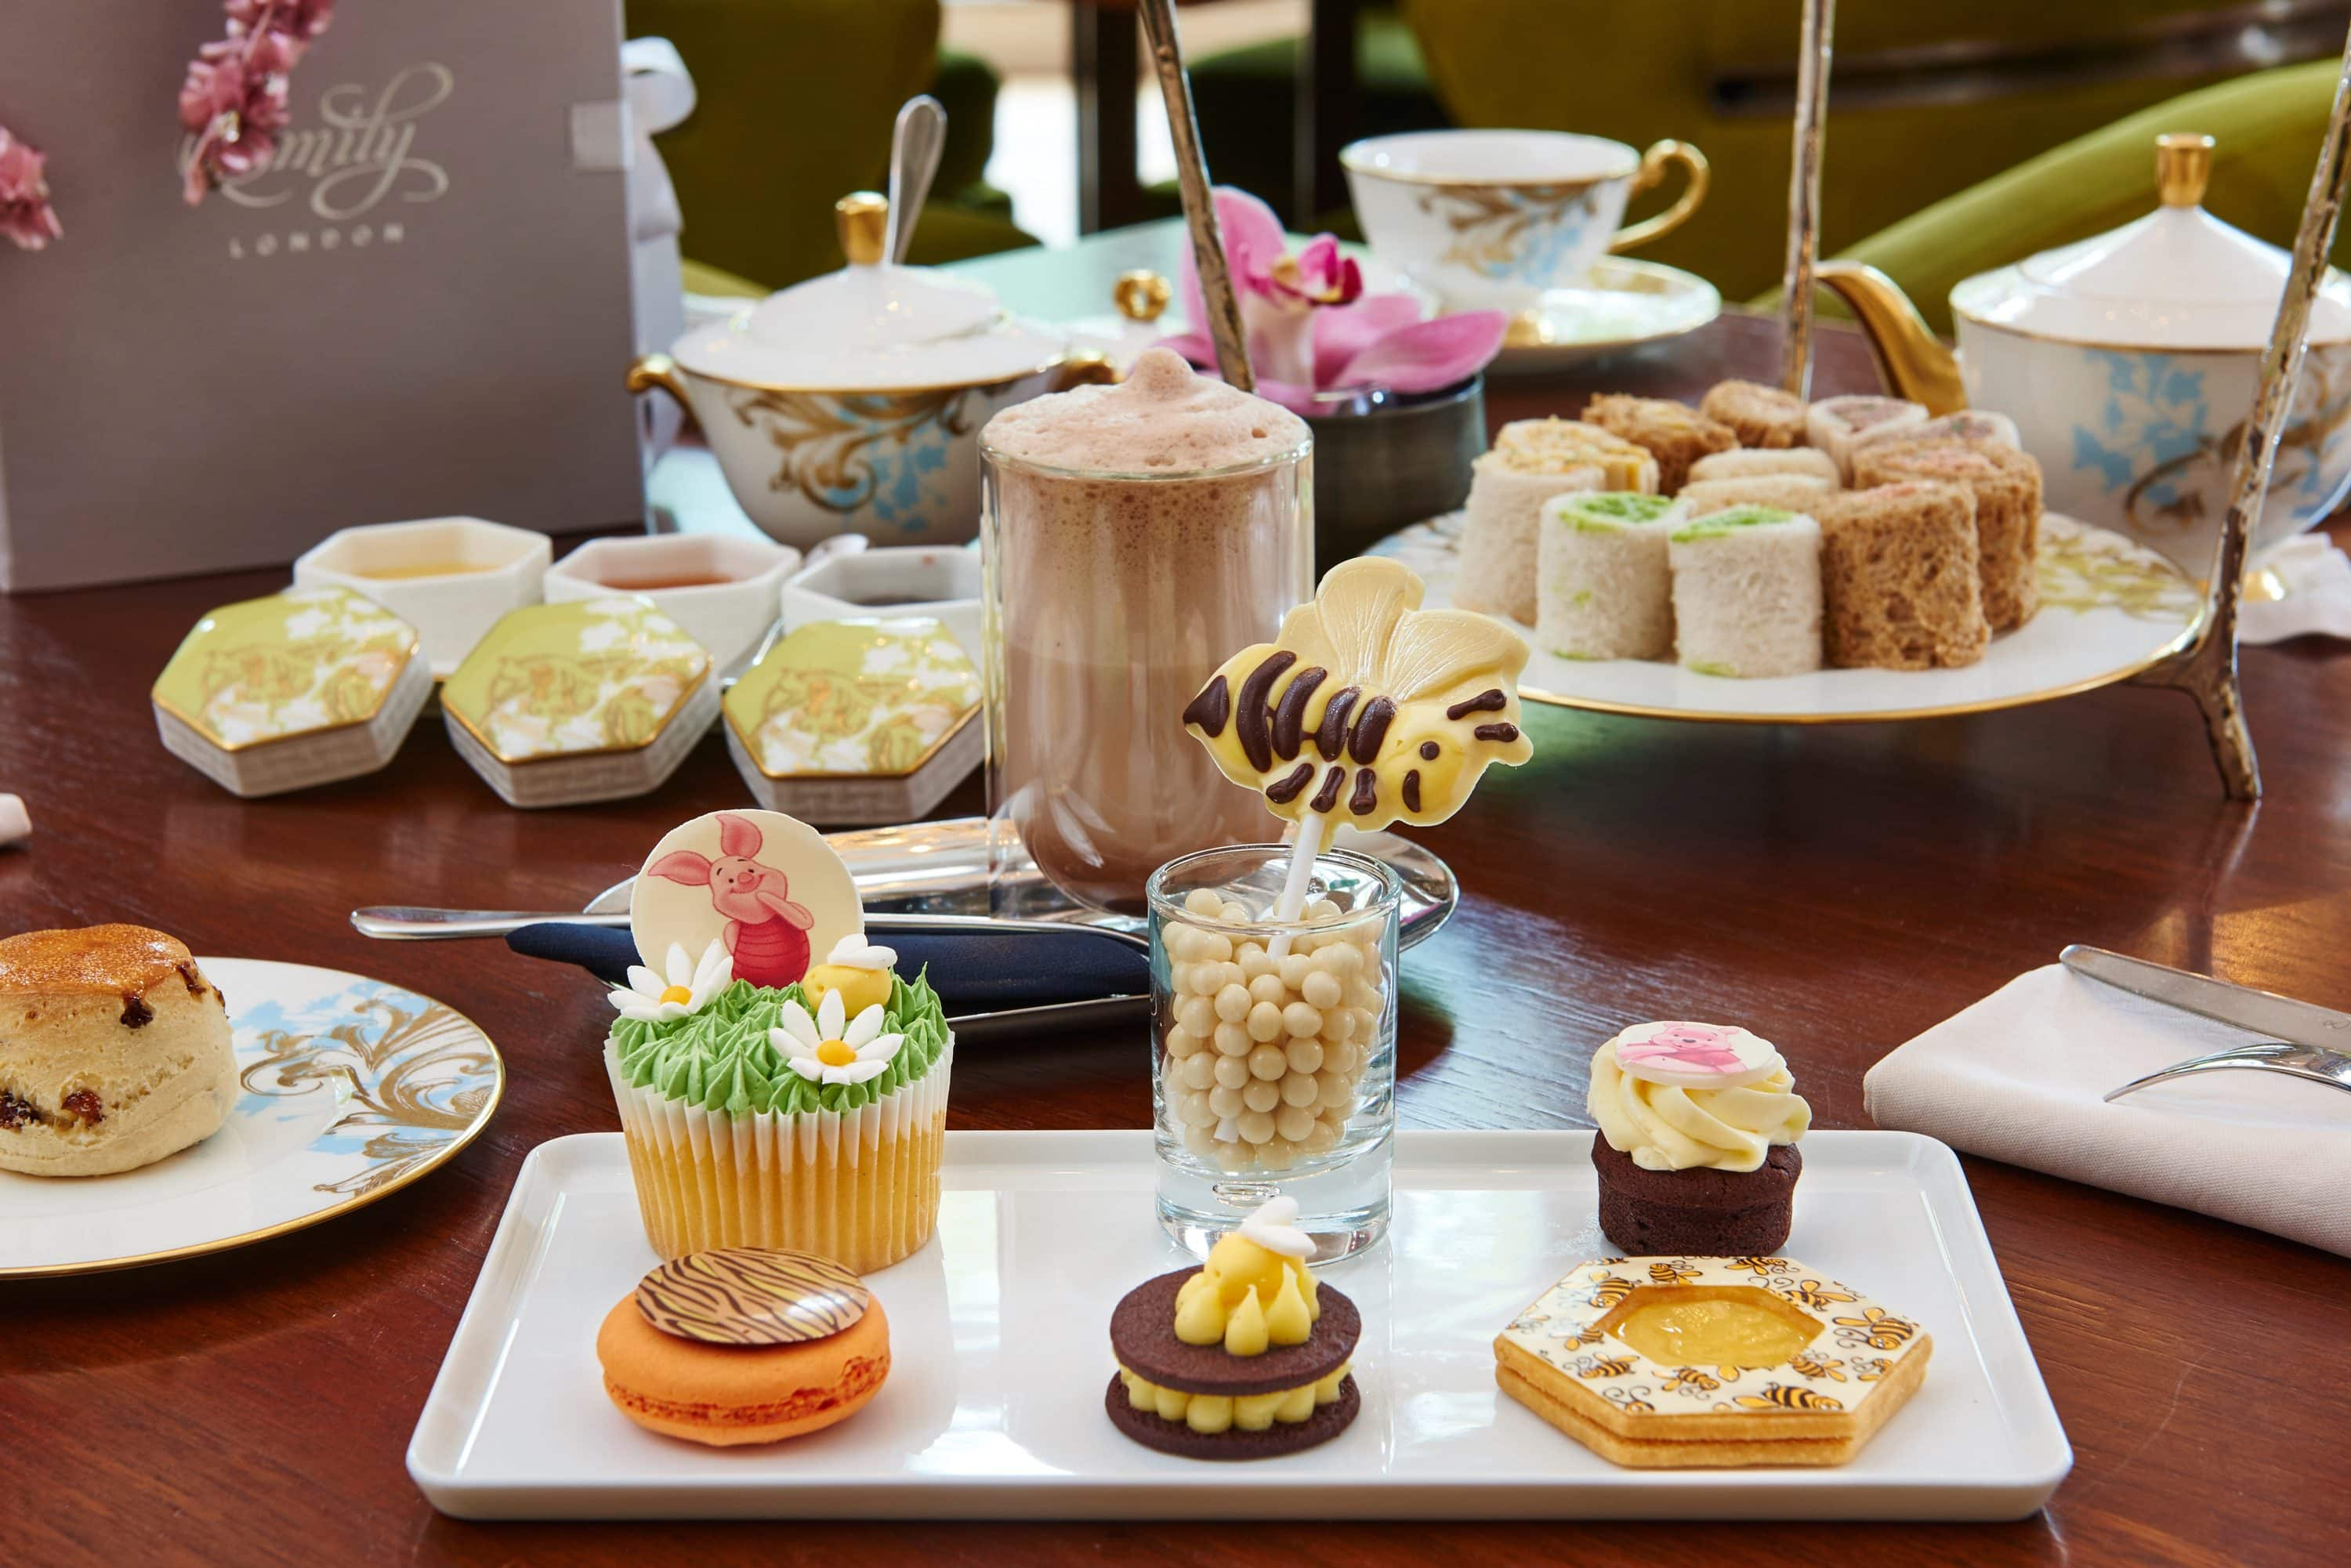 Children's afternoon tea at the Rosebery Lounge